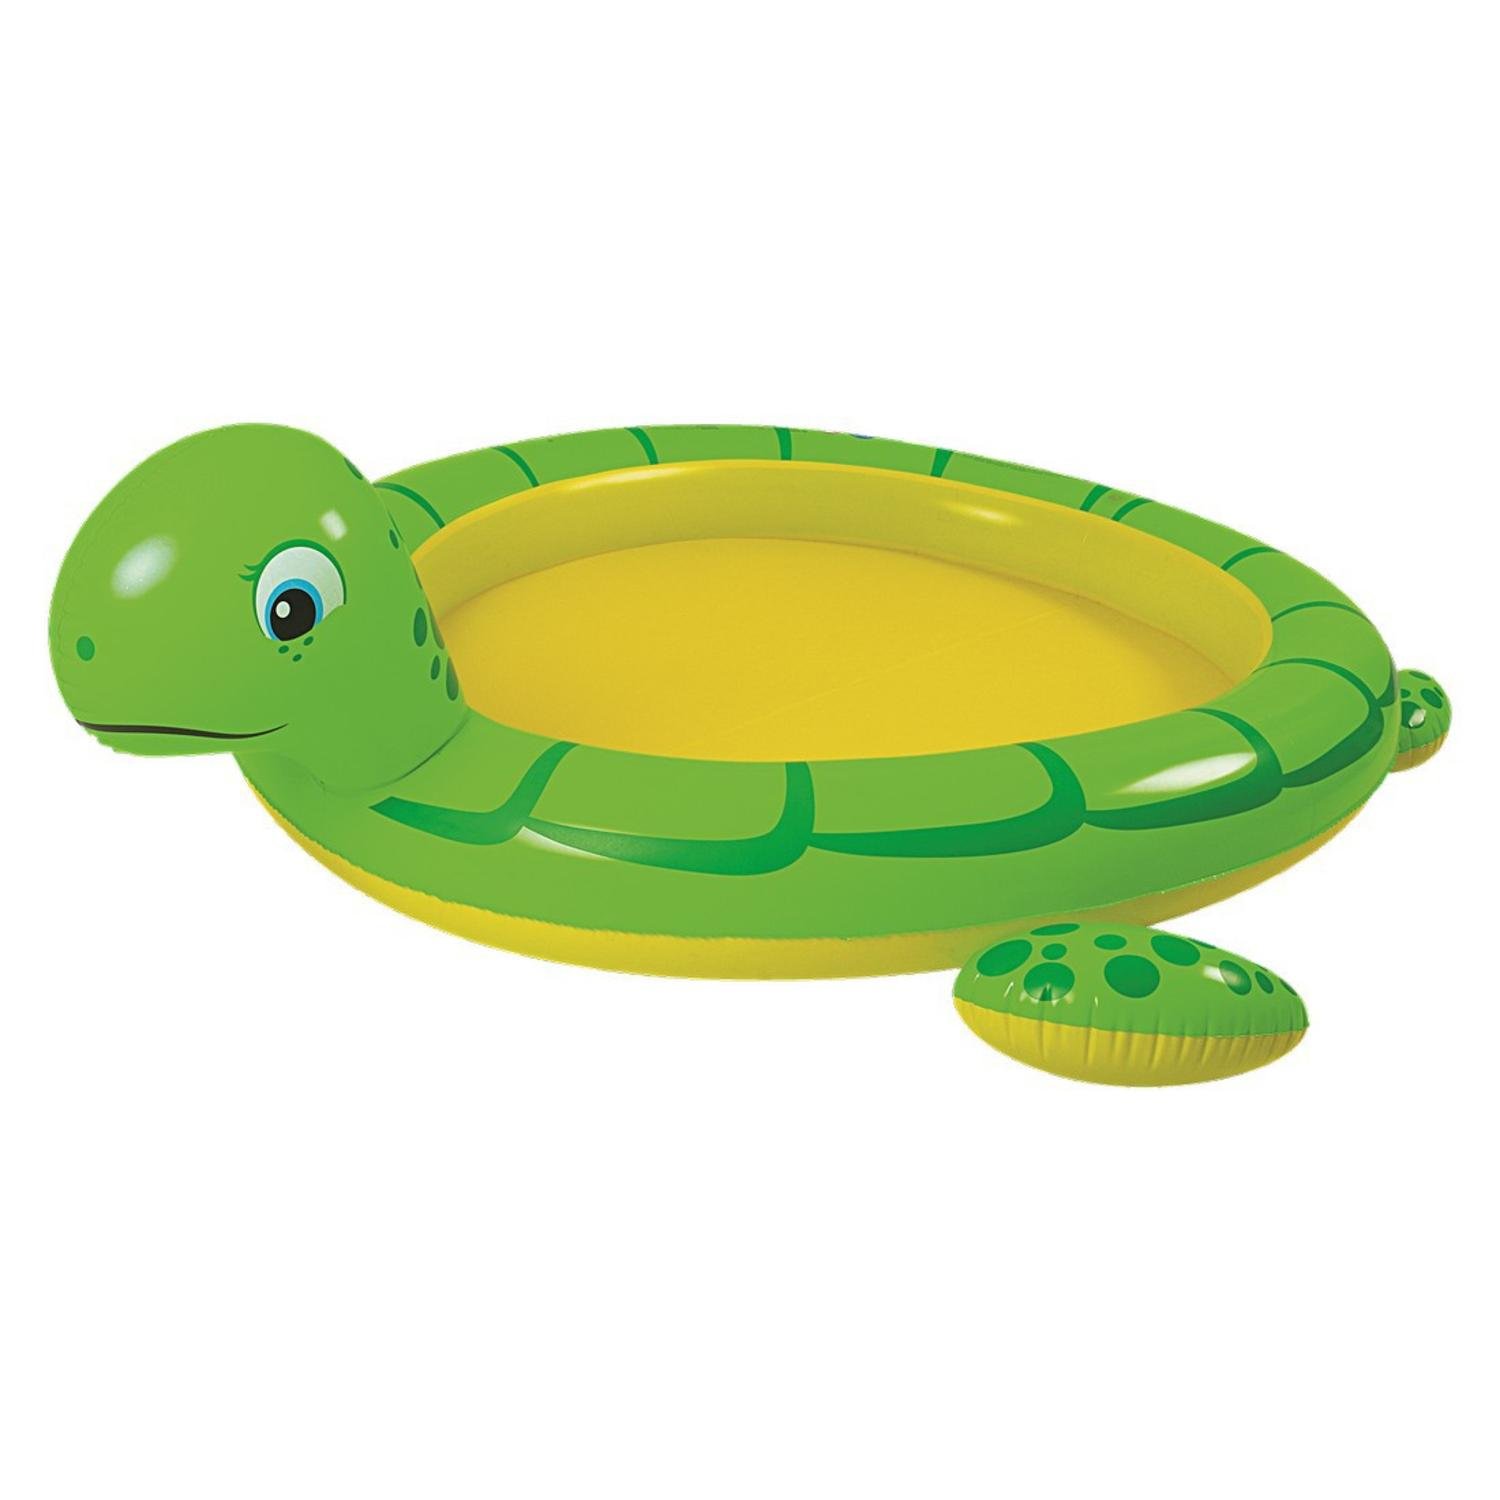 """214"""" Green and Yellow Inflatable Sea Turtle Children's Spray Pool - image 1 de 2"""